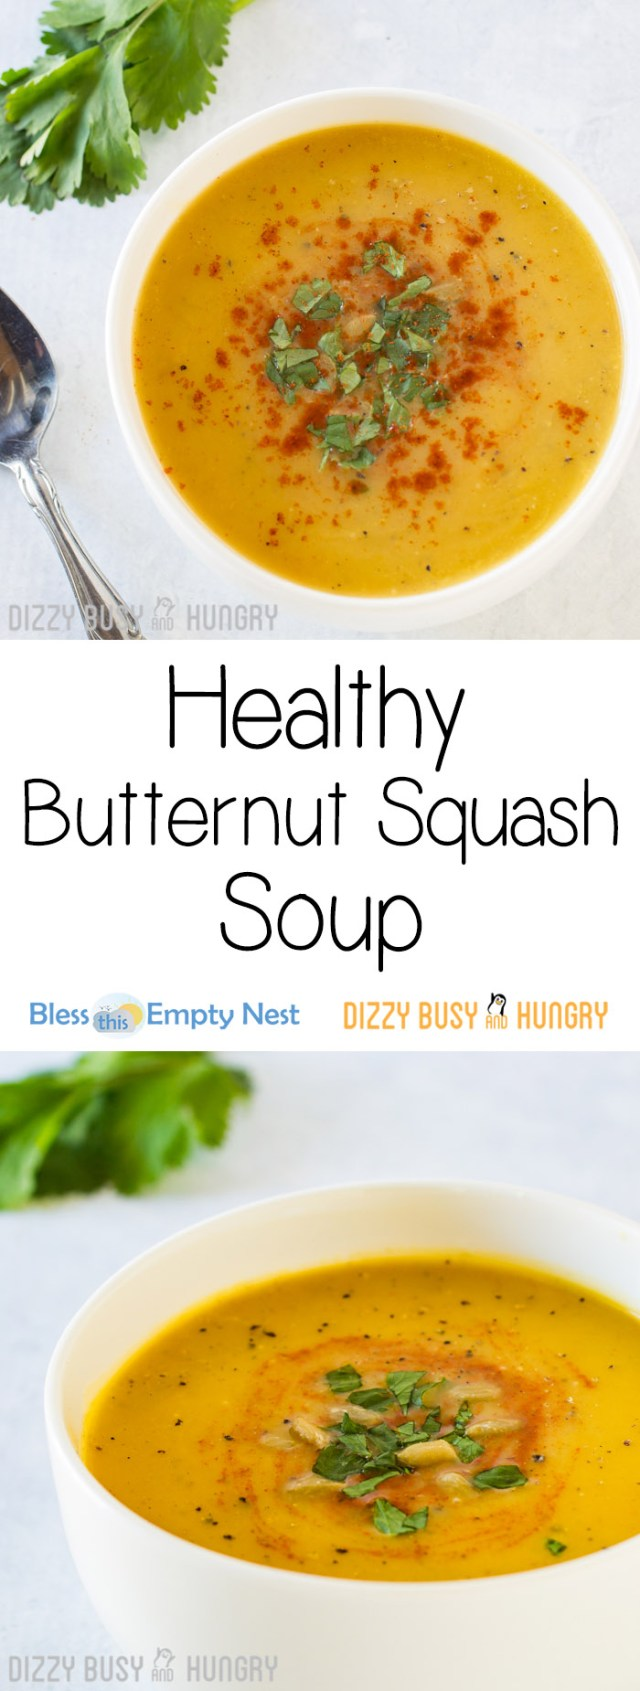 Healthy Butternut Squash Soup | BlessThisEmptyNest.com - Silky, fragrant, and flavorful, this comforting soup is a perfect dish for a cozy dinner with your honey!!